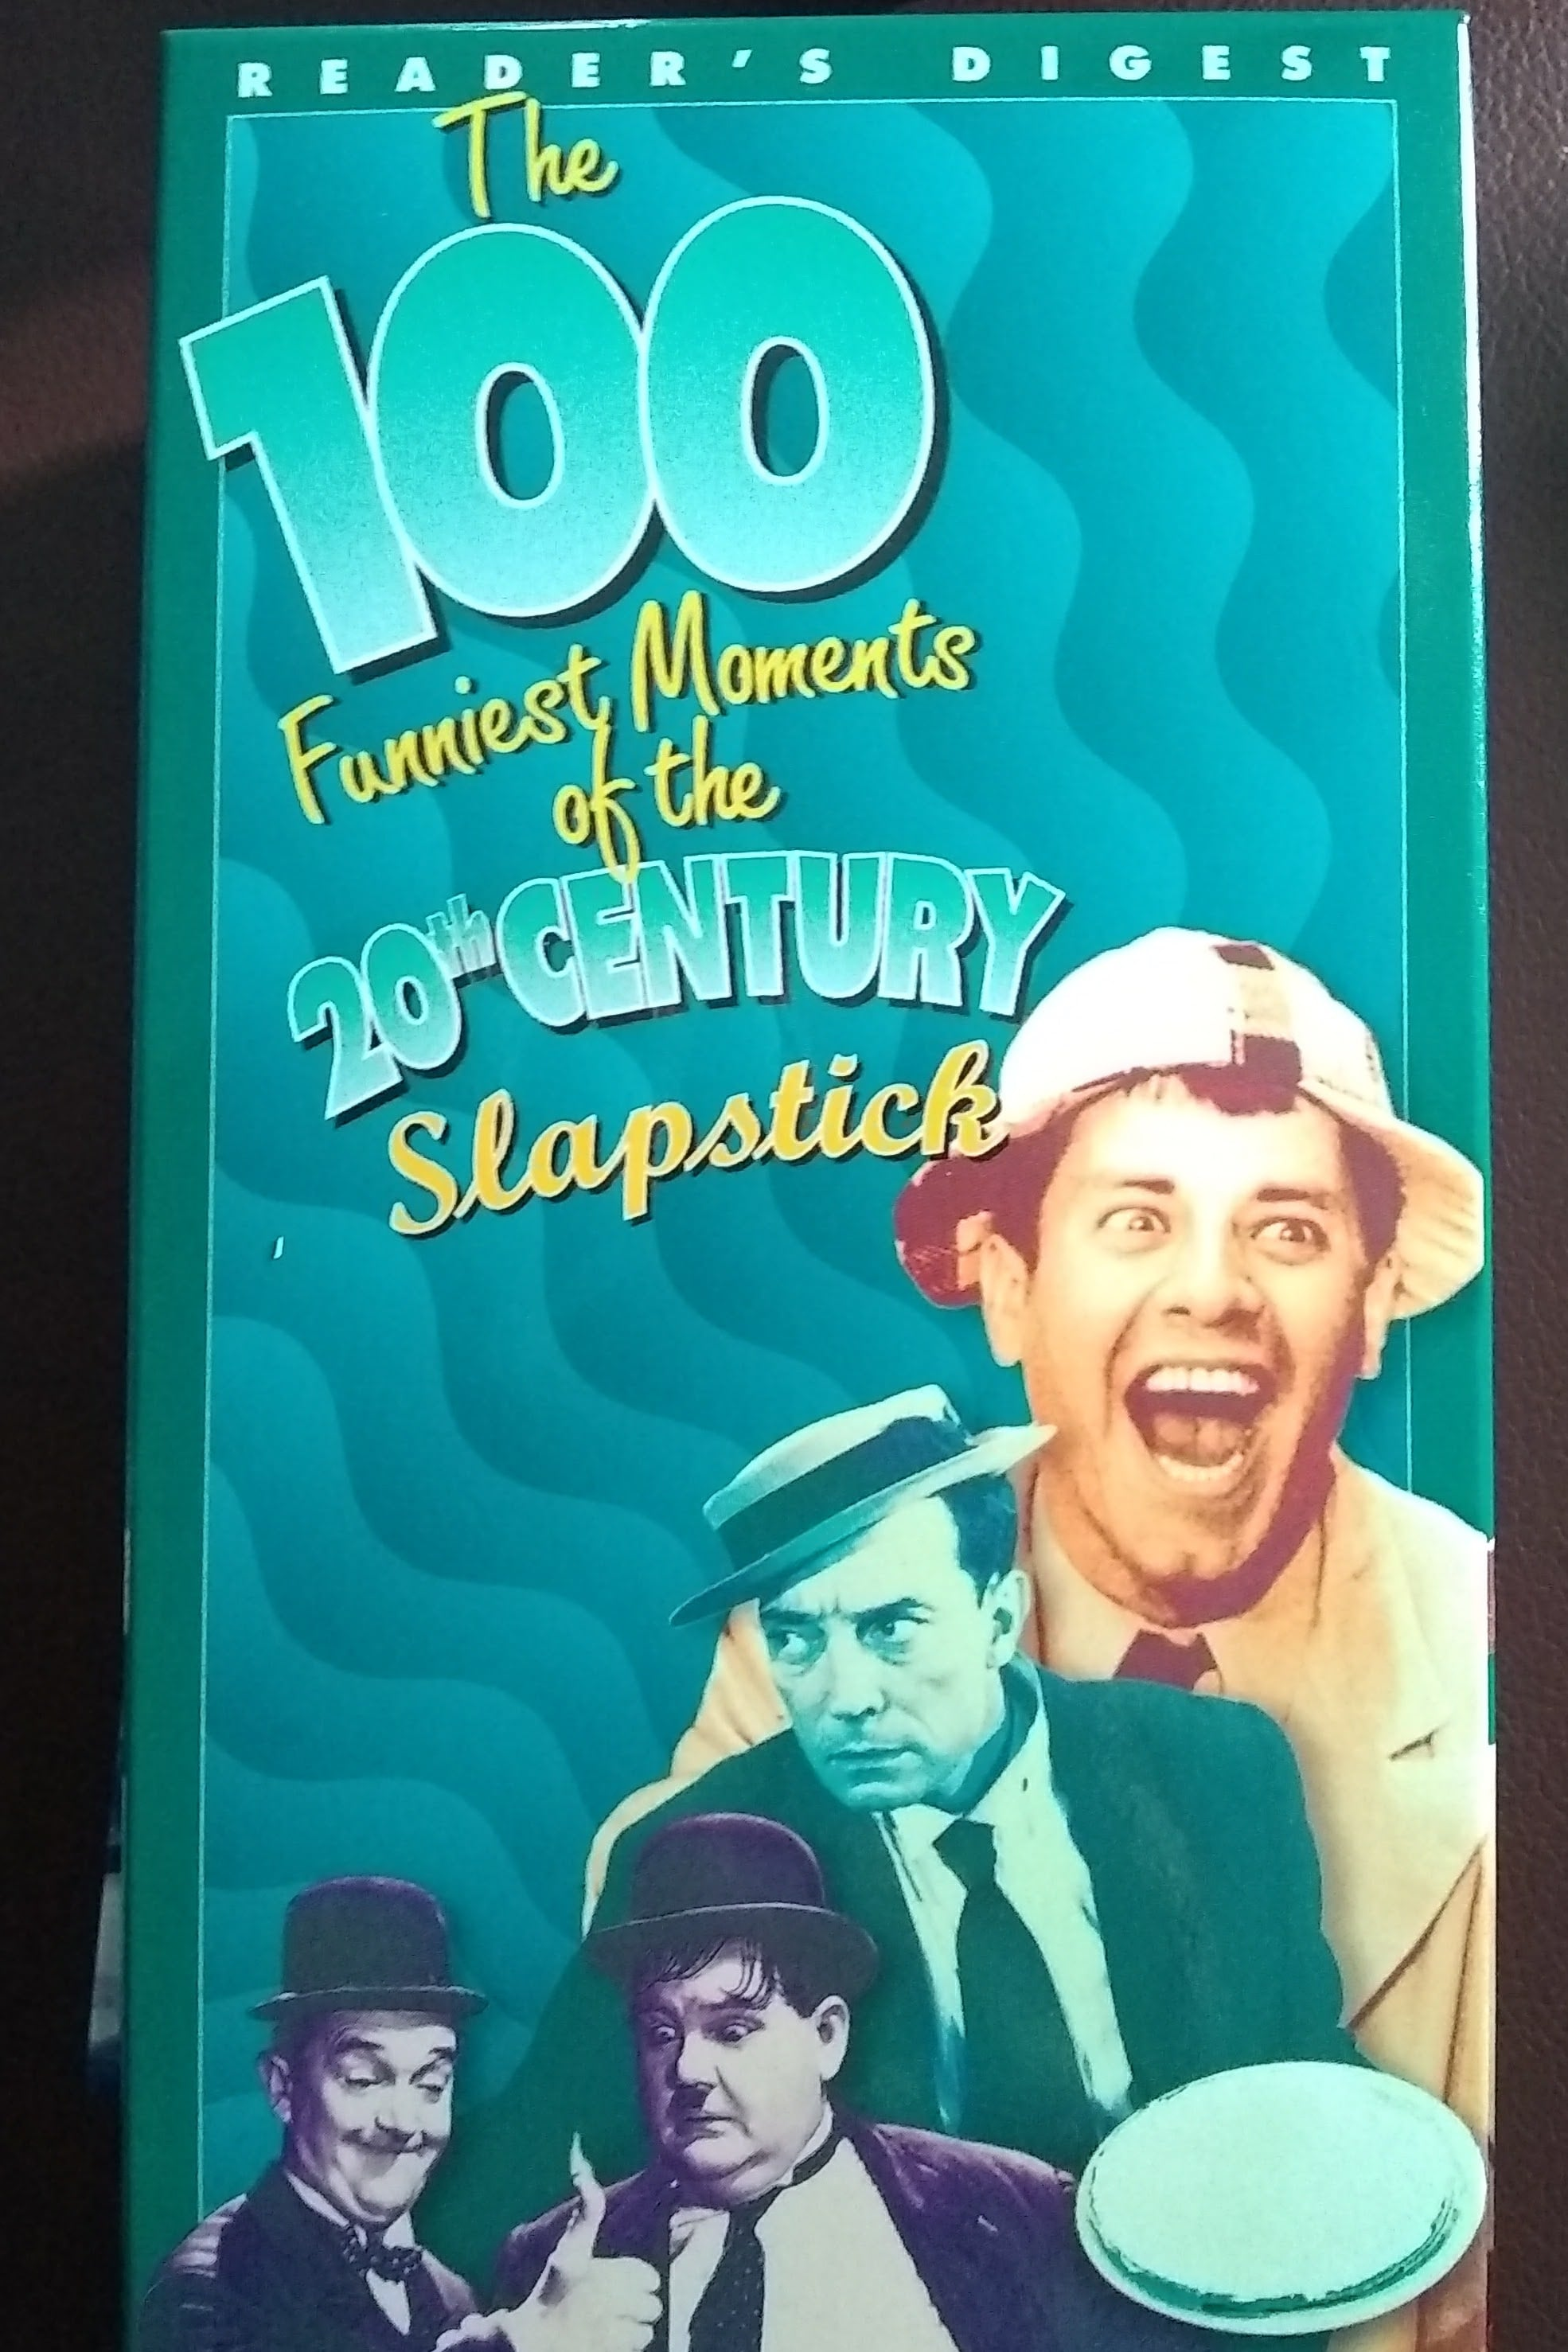 The 100 Funniest Moments of the 20th Century: Slapstick (1995)